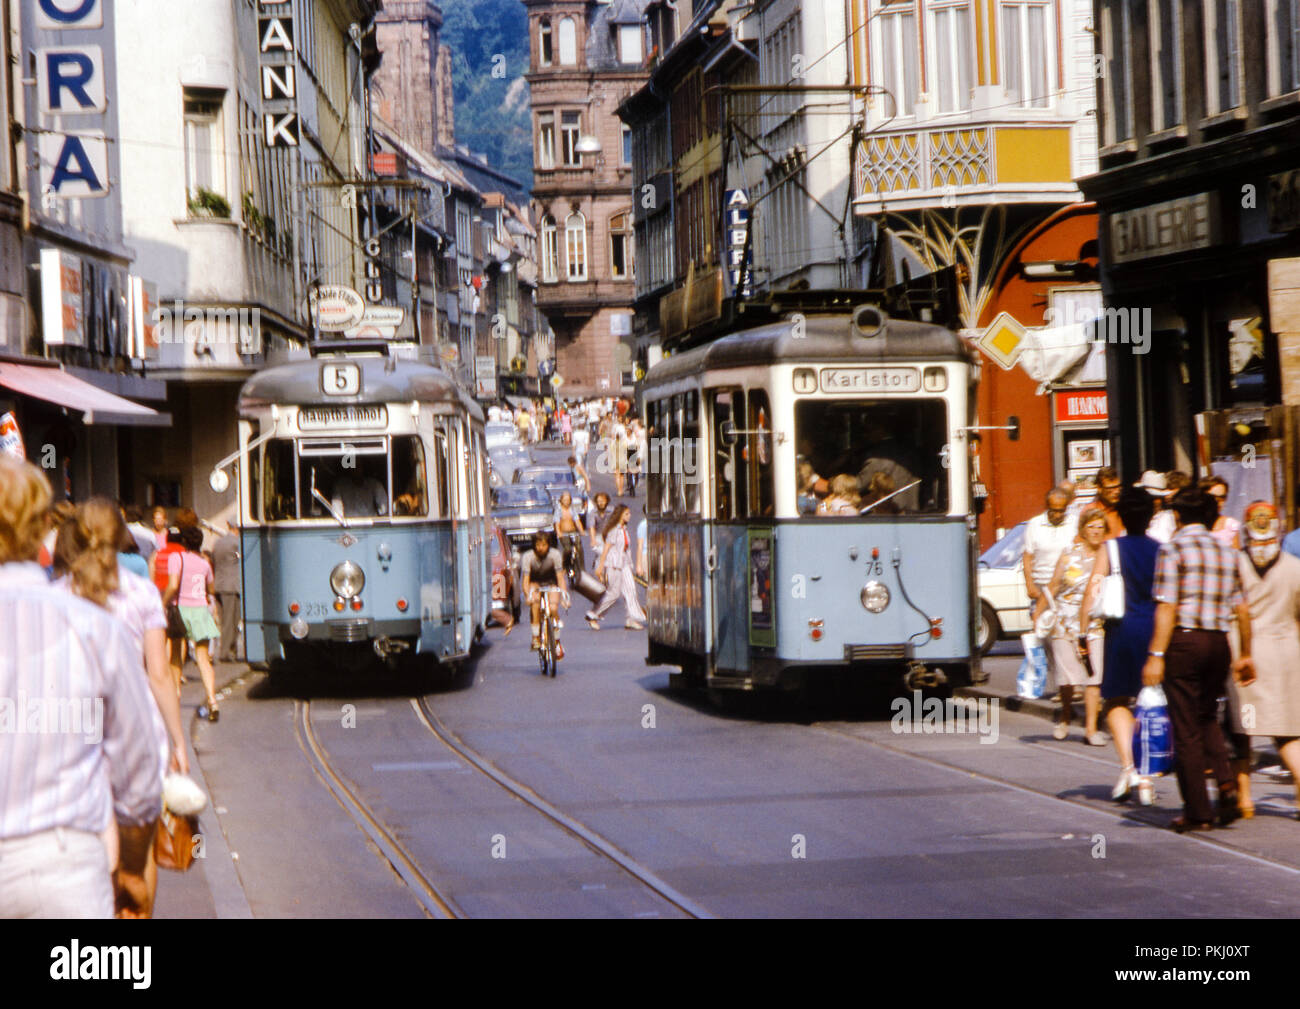 Busy with shoppers and trams on Hauptstrasse, Altstadt, Heidelberg, Germany taken in August 1973. Original archive photograph. - Stock Image